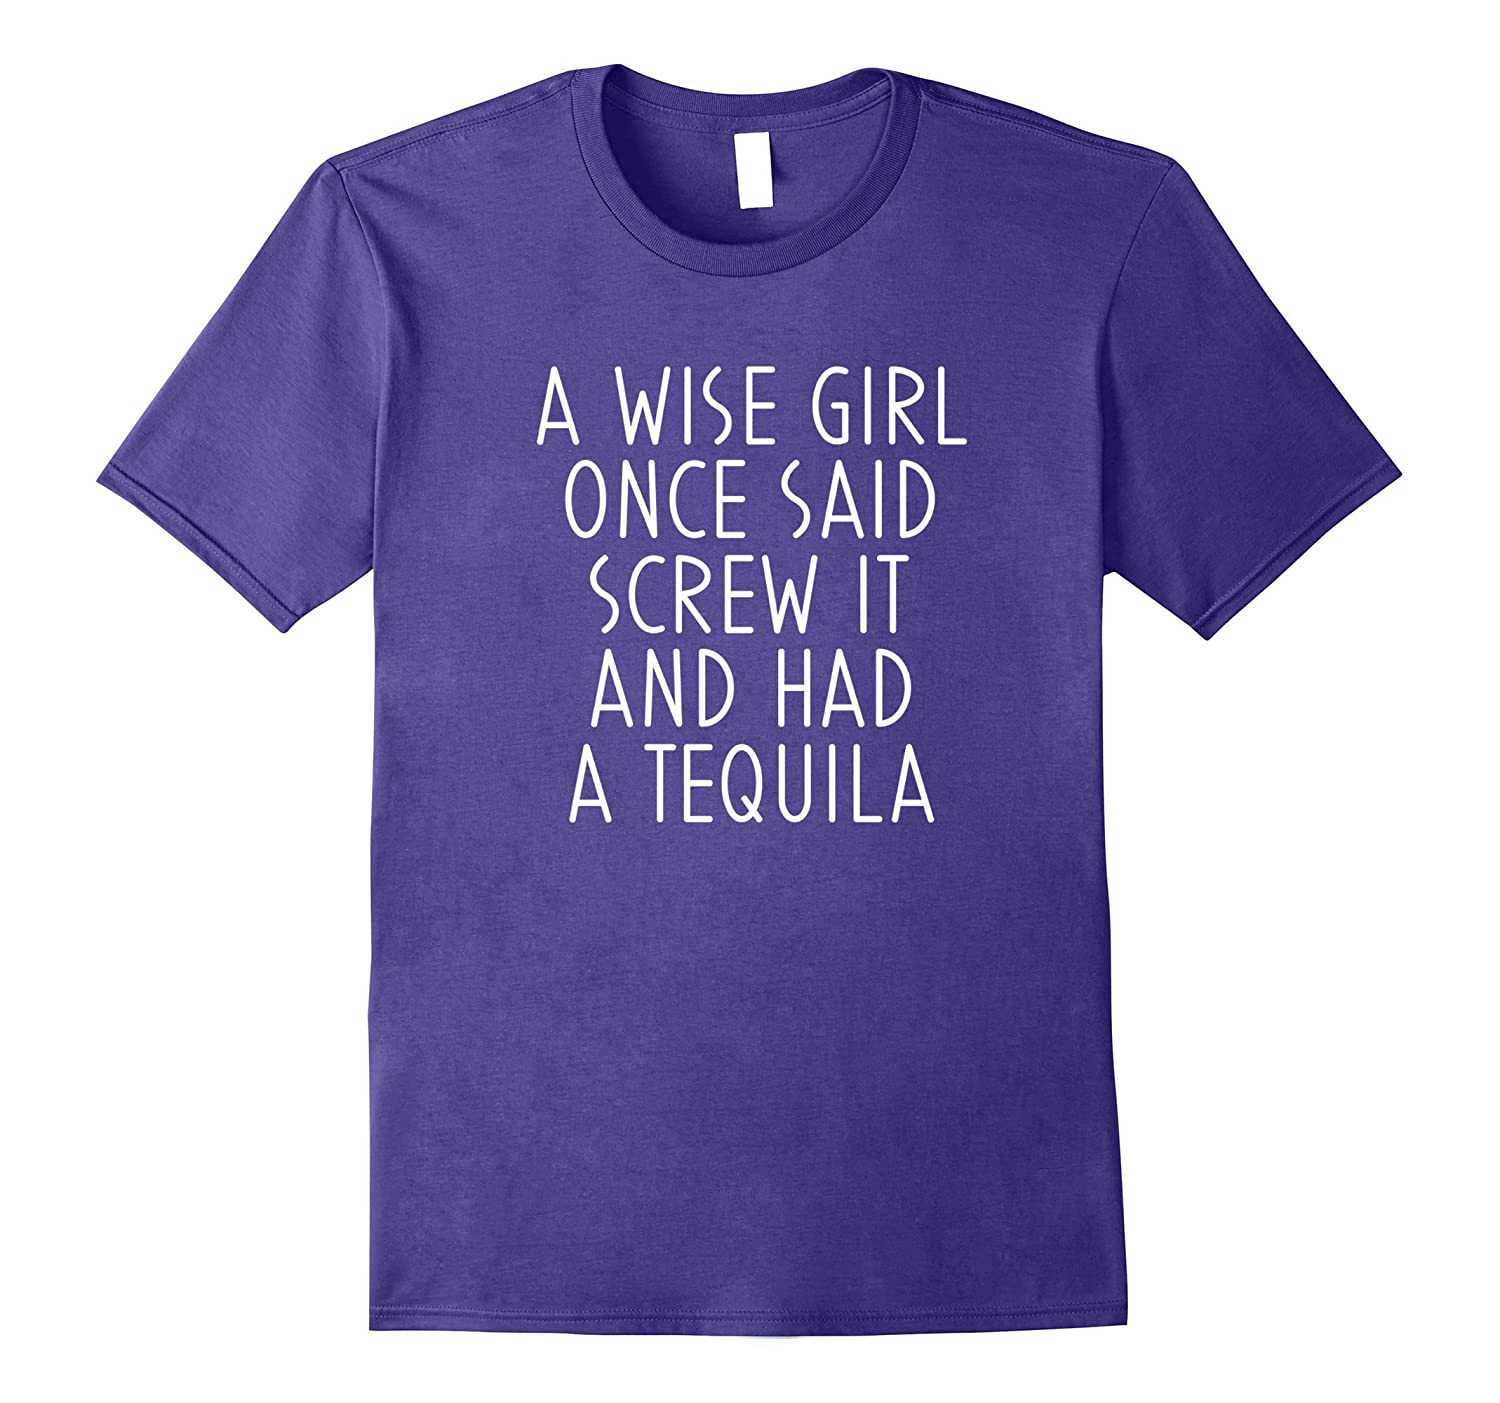 A Wise Girl Once Said Screw It And Had A Tequila T Shirt-TJ